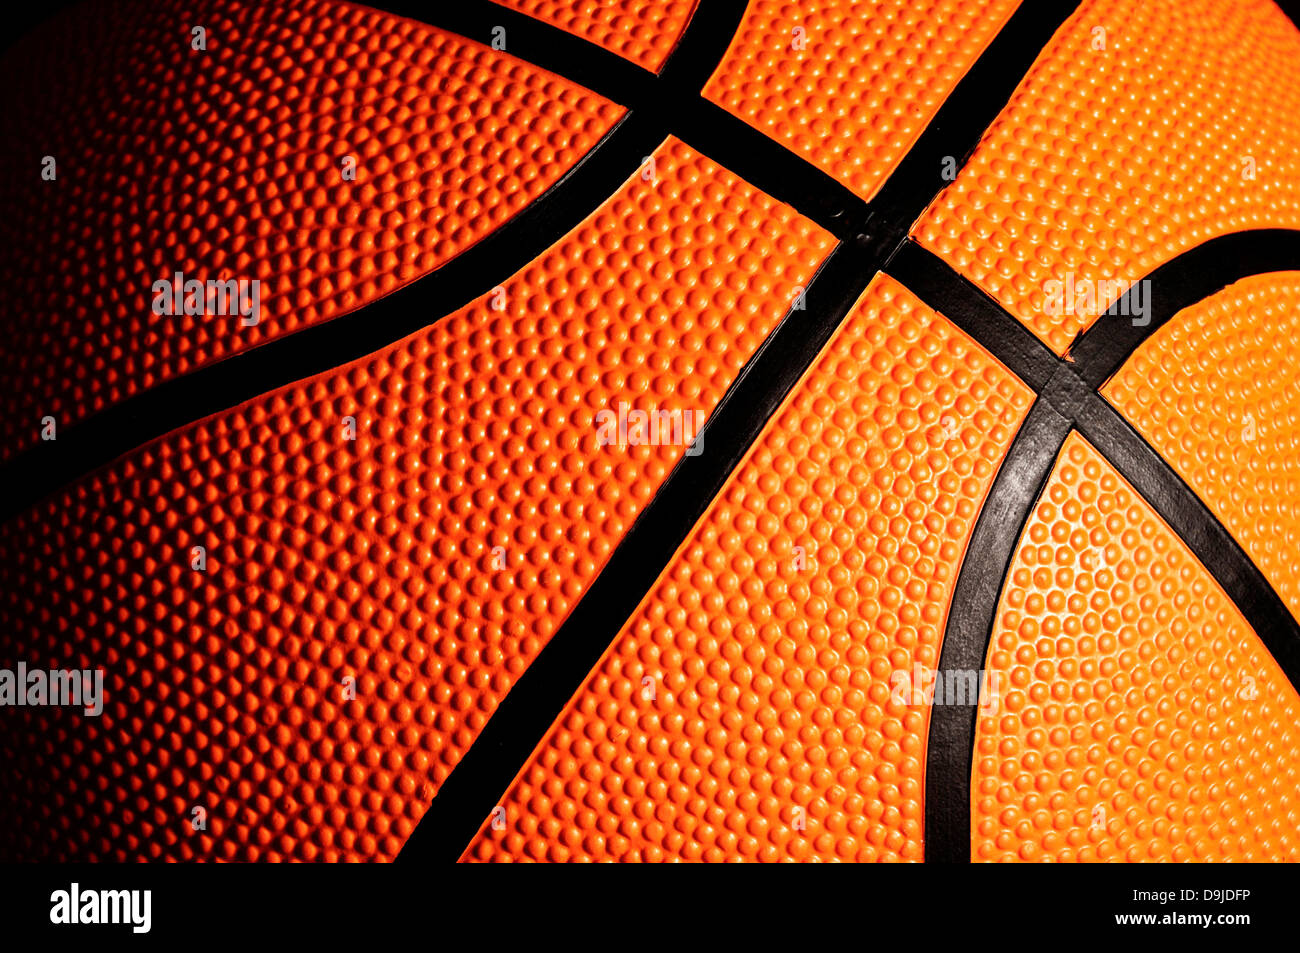 detail of a basketball ball Stock Photo